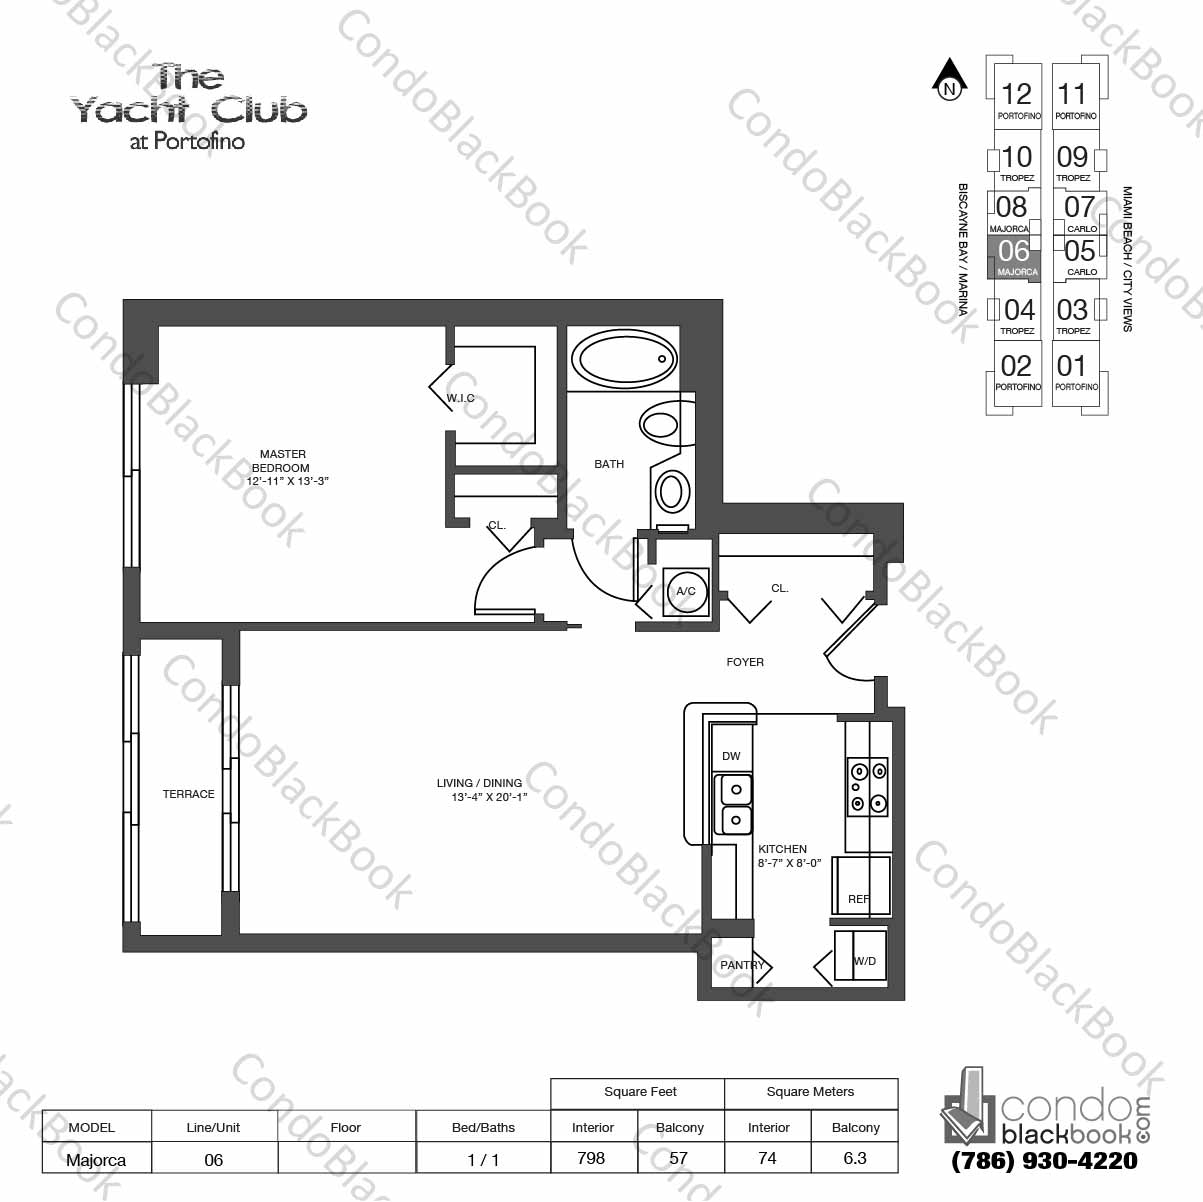 Floor plan for Yacht Club at Portofino South Beach Miami Beach, model Majorca, line 06,  1 / 1 bedrooms, 798 sq ft